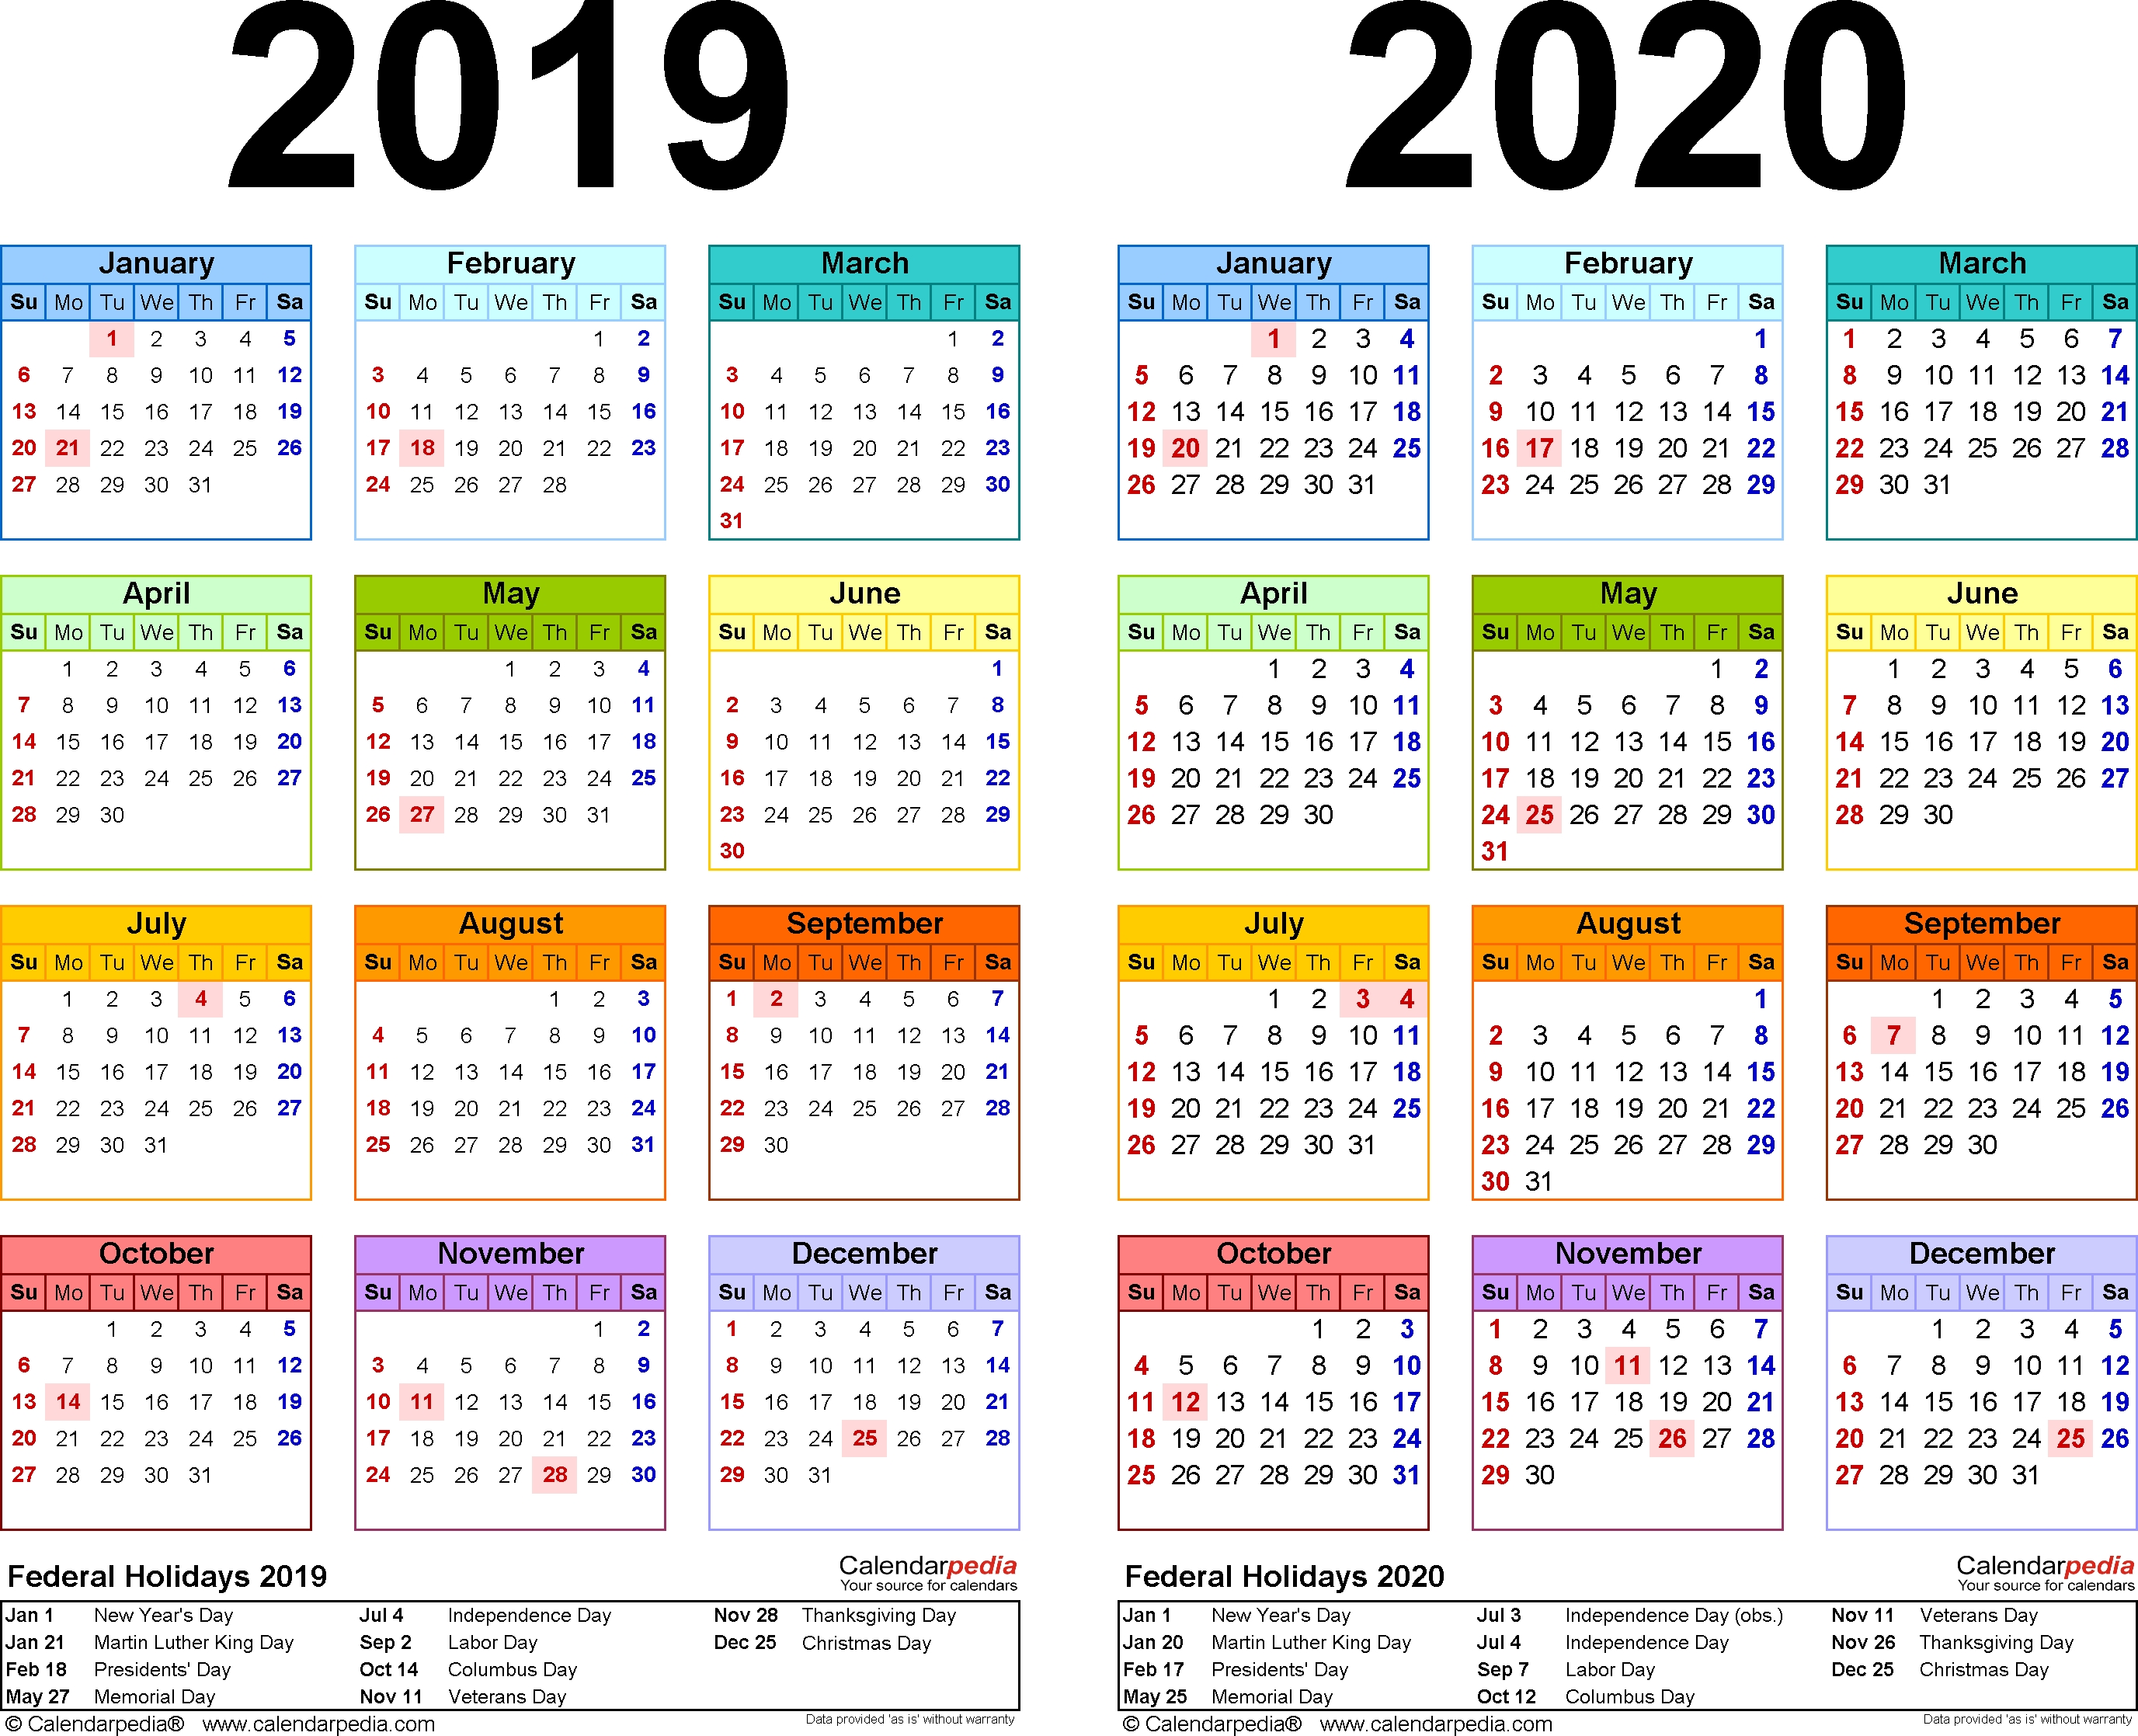 2019-2020 Calendar - Free Printable Two-Year Pdf Calendars  2020/2020 Financial Year Planner